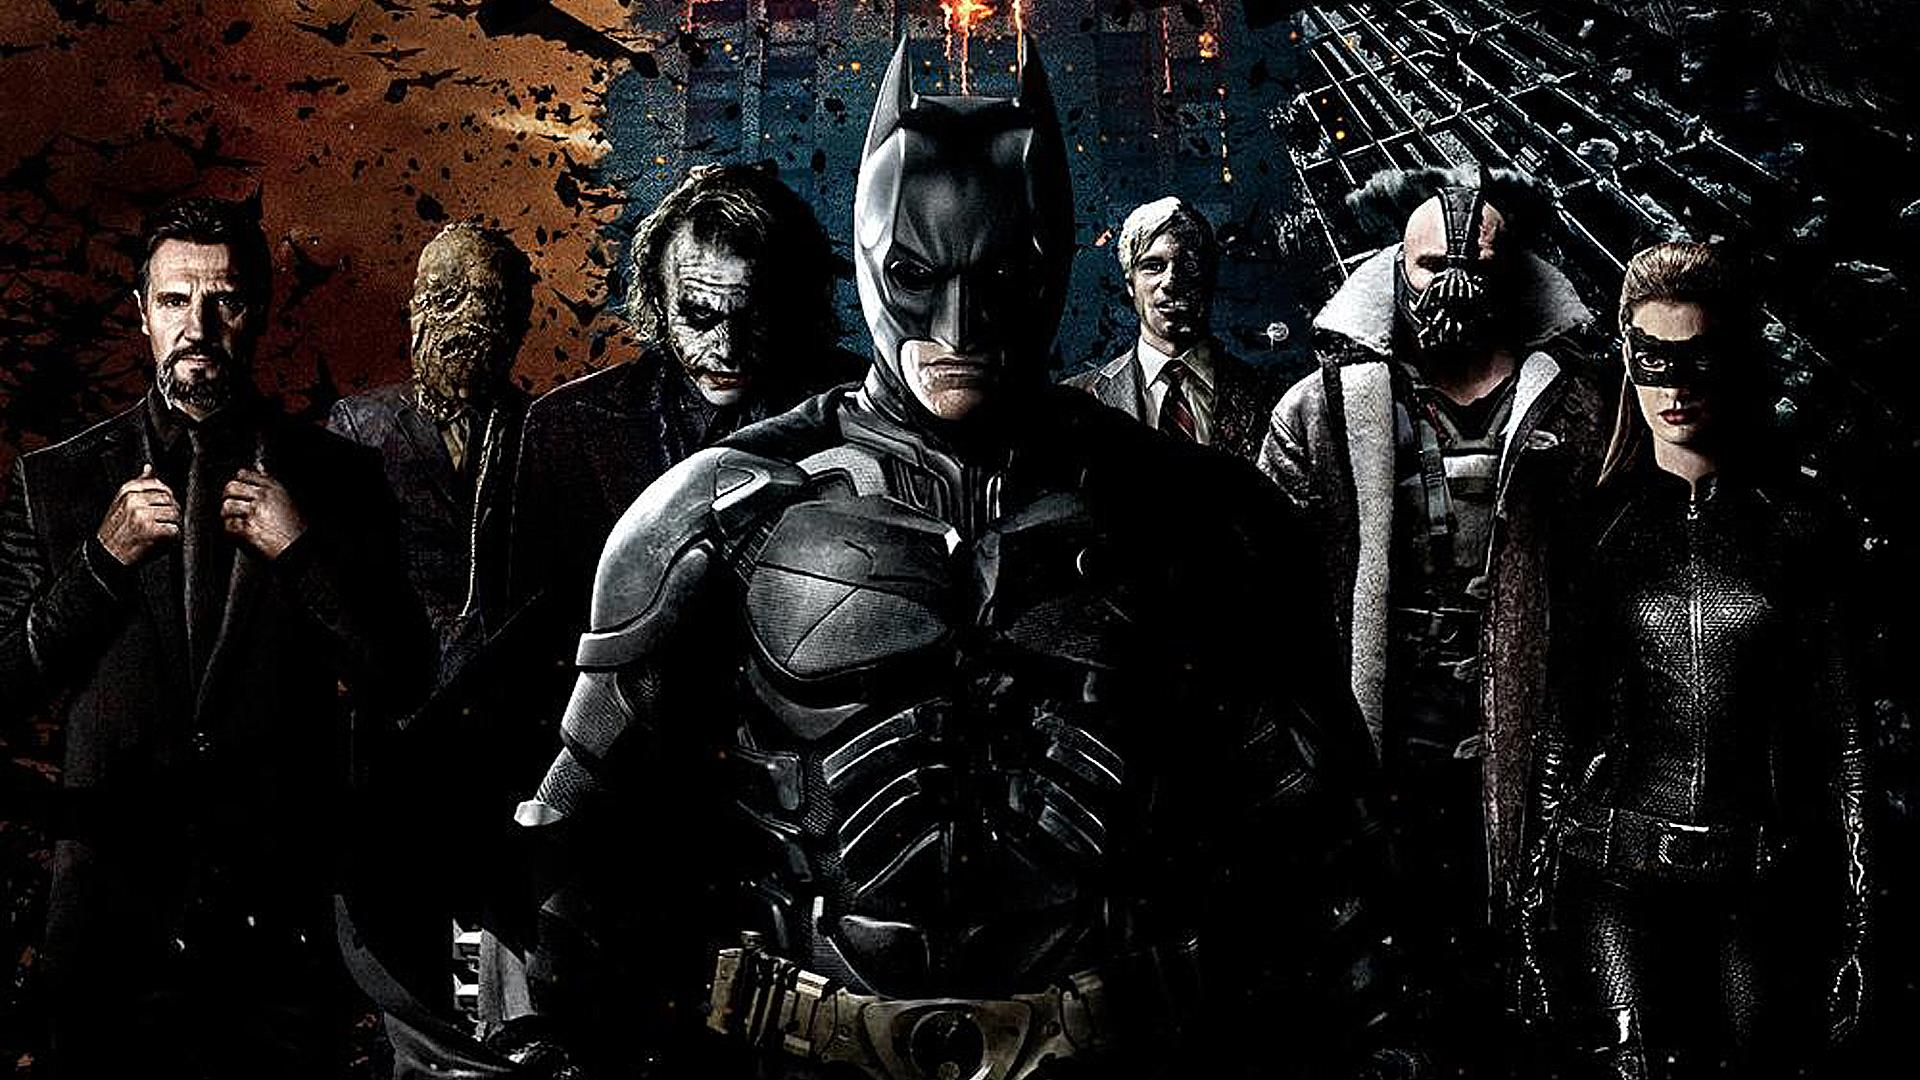 Batman Wallpaper Abyss The Dark Knight Rises 5 Like Favorite Add An Author Tags Wallpapers ID269481